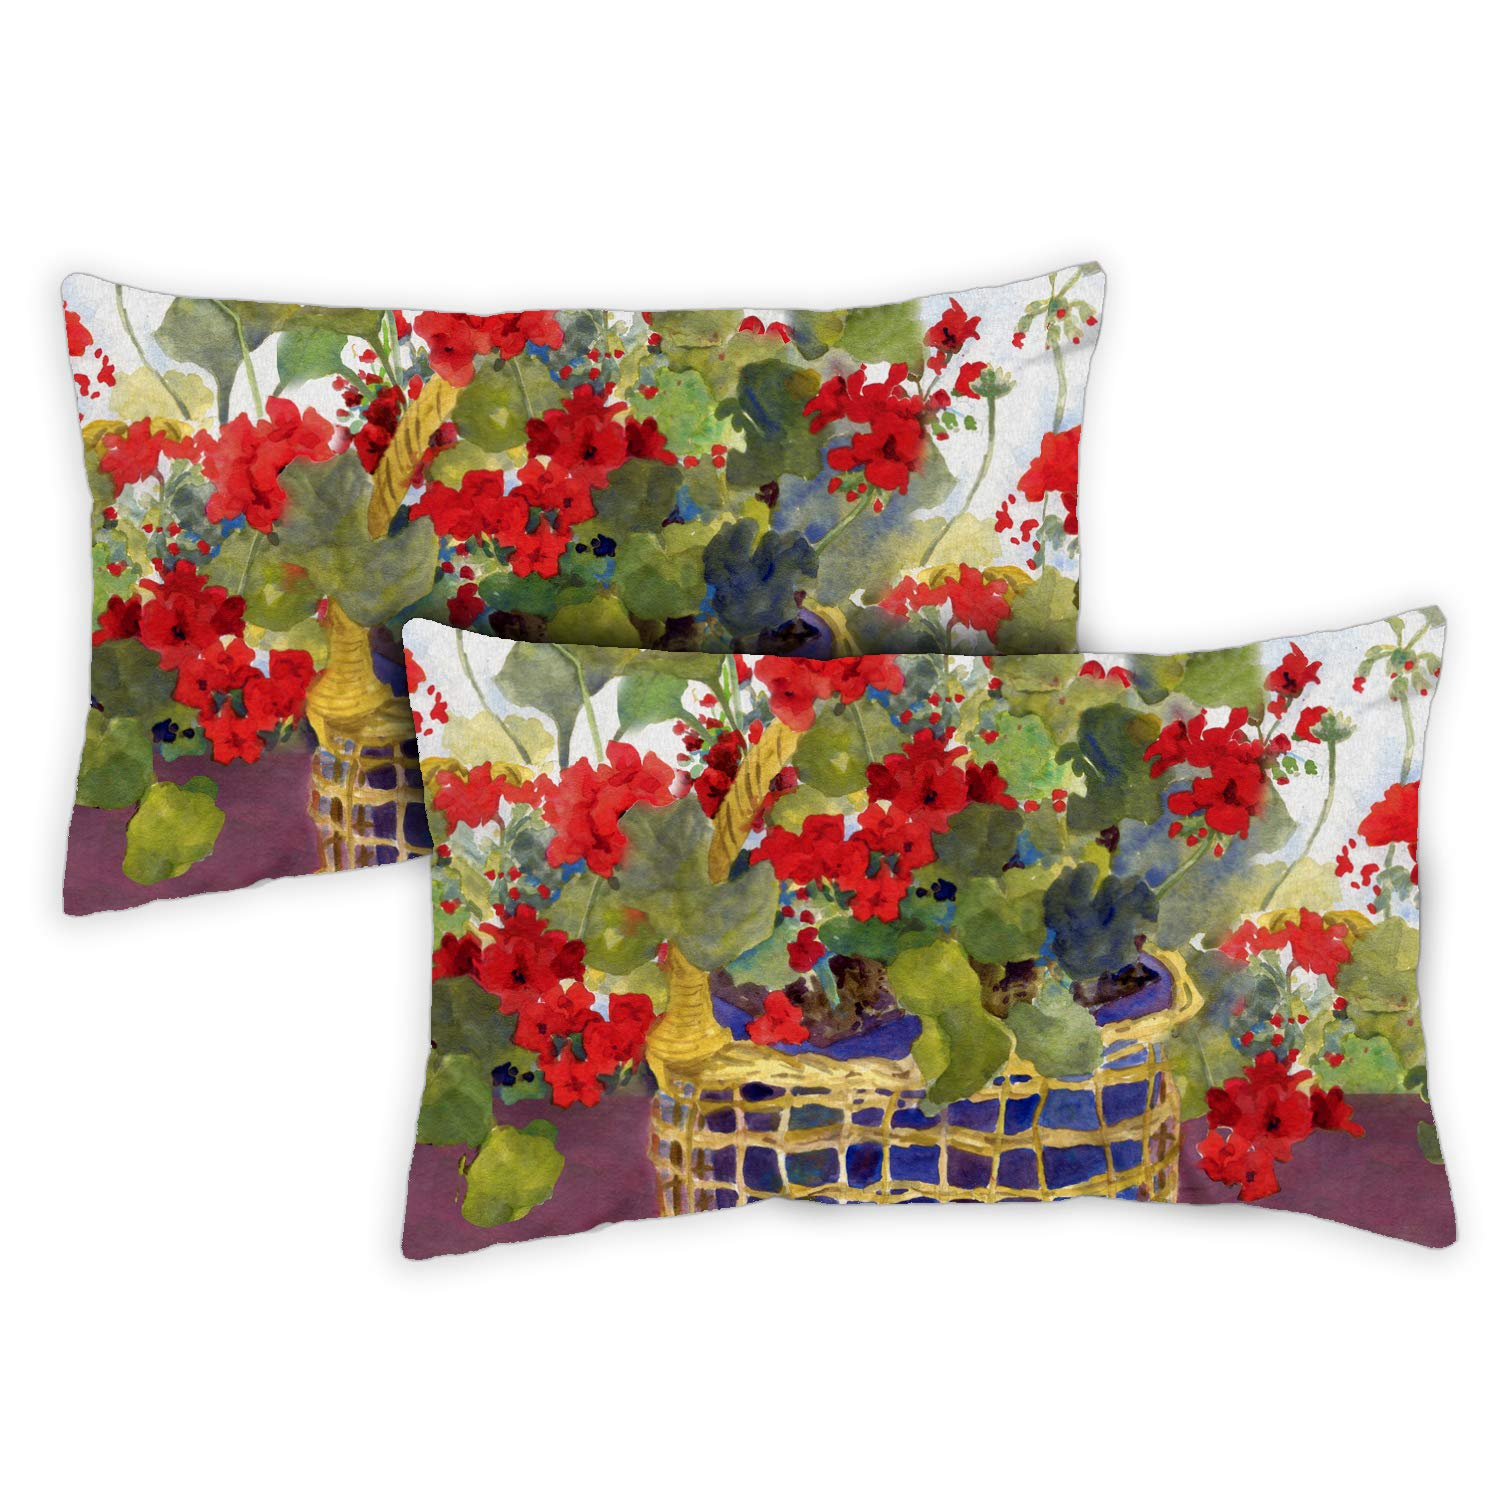 Toland Home Garden 731218 Geranium Basket 12 x 19 Inch Indoor Outdoor, Pillow, Insert 2-Pack